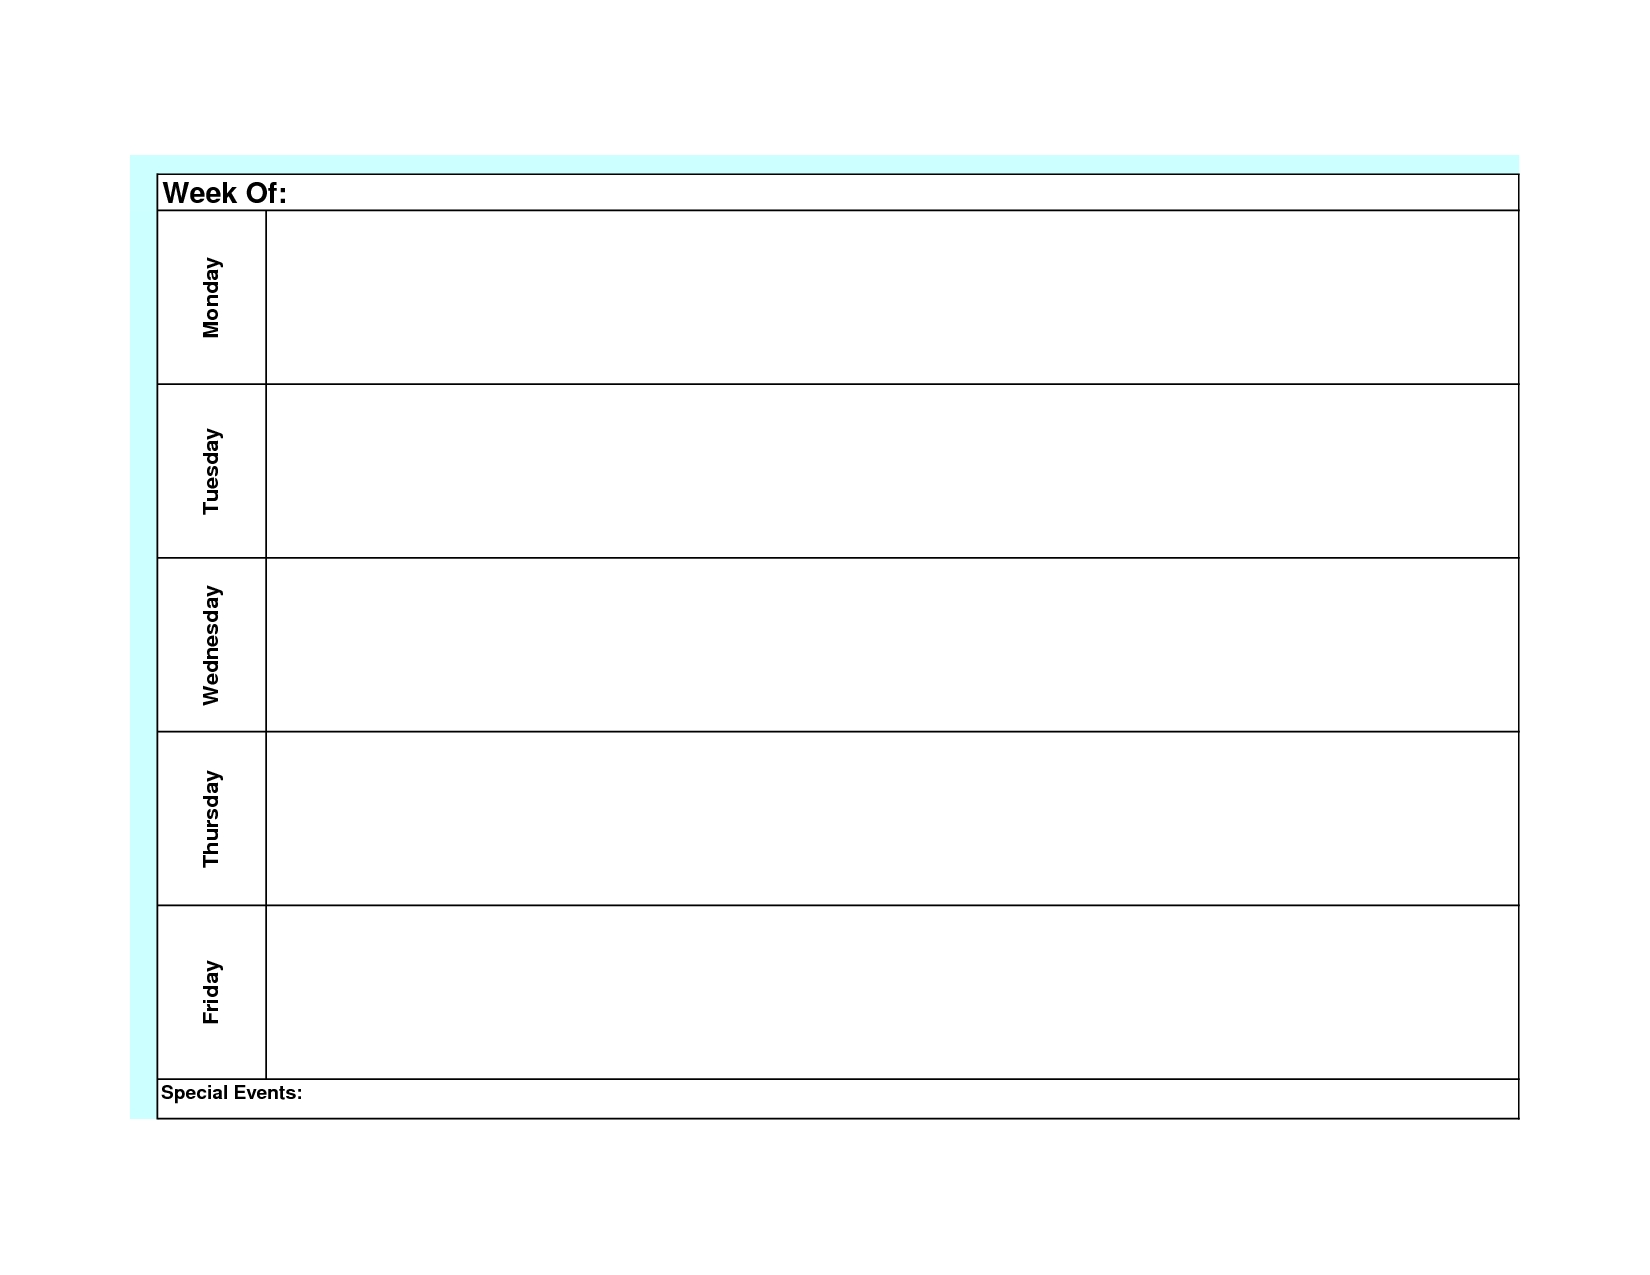 Blank Weekly Calendar Template Printable Fillable With Times Time throughout Blank Monday Through Friday Weekly Calendar Without Download